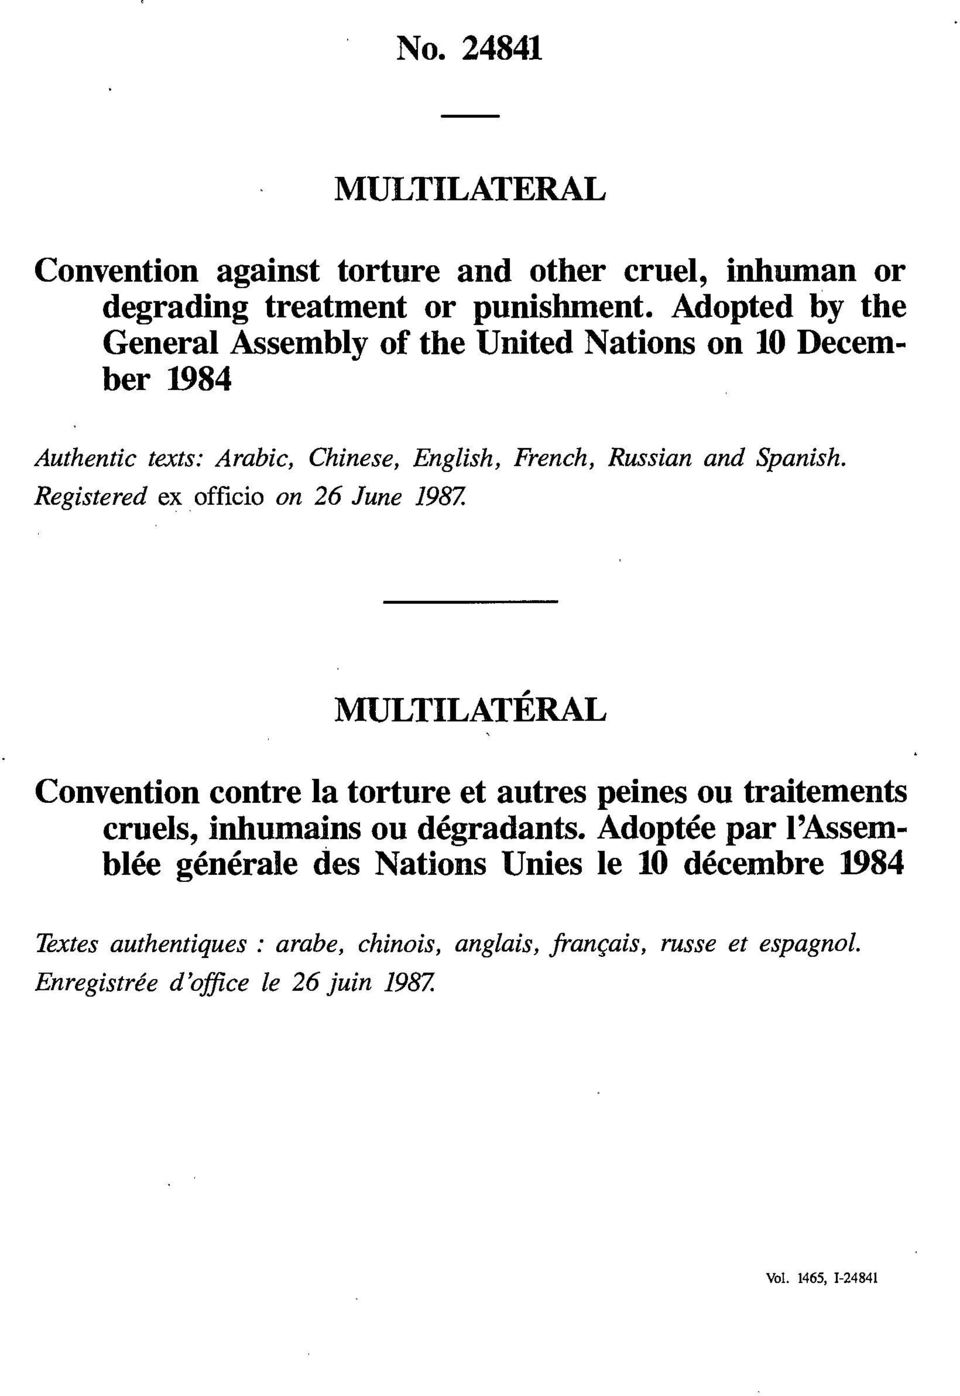 Registered ex officio on 26 June 1987. MULTILATERAL Convention contre la torture et autres peines ou traitements cruels, inhumains ou dégradants.